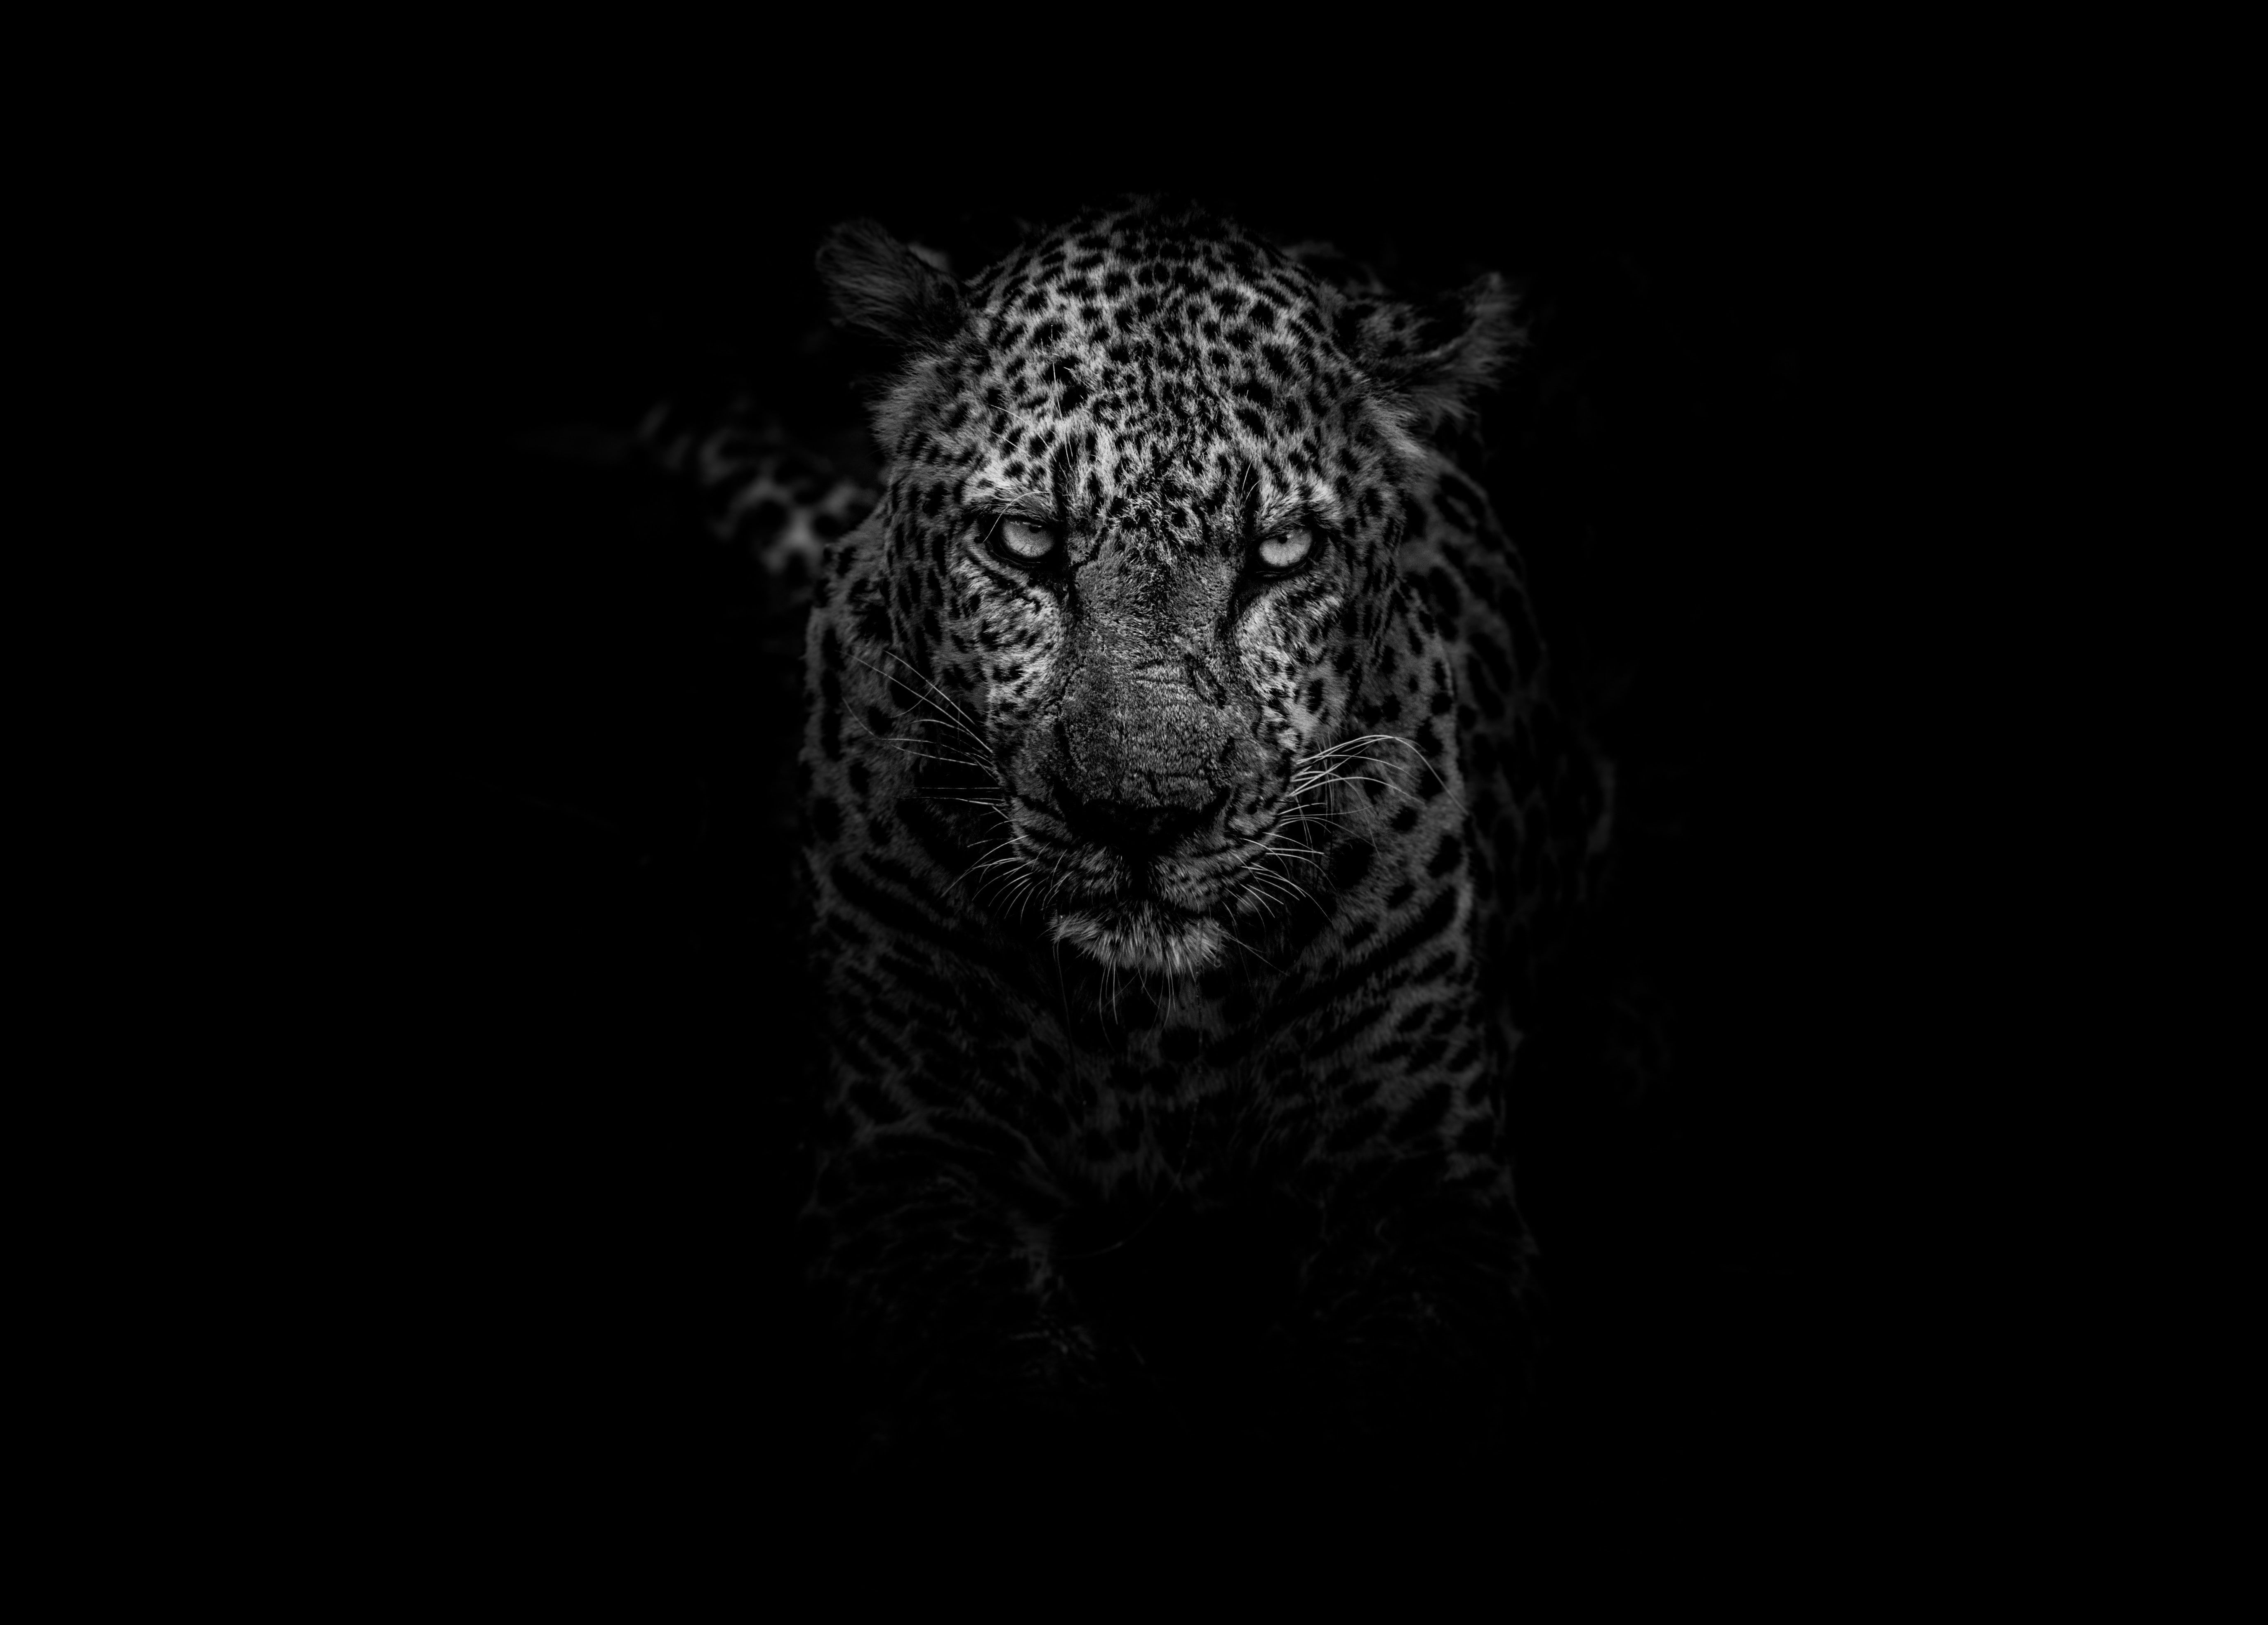 Black Animals Wallpapers Top Free Black Animals Backgrounds Wallpaperaccess